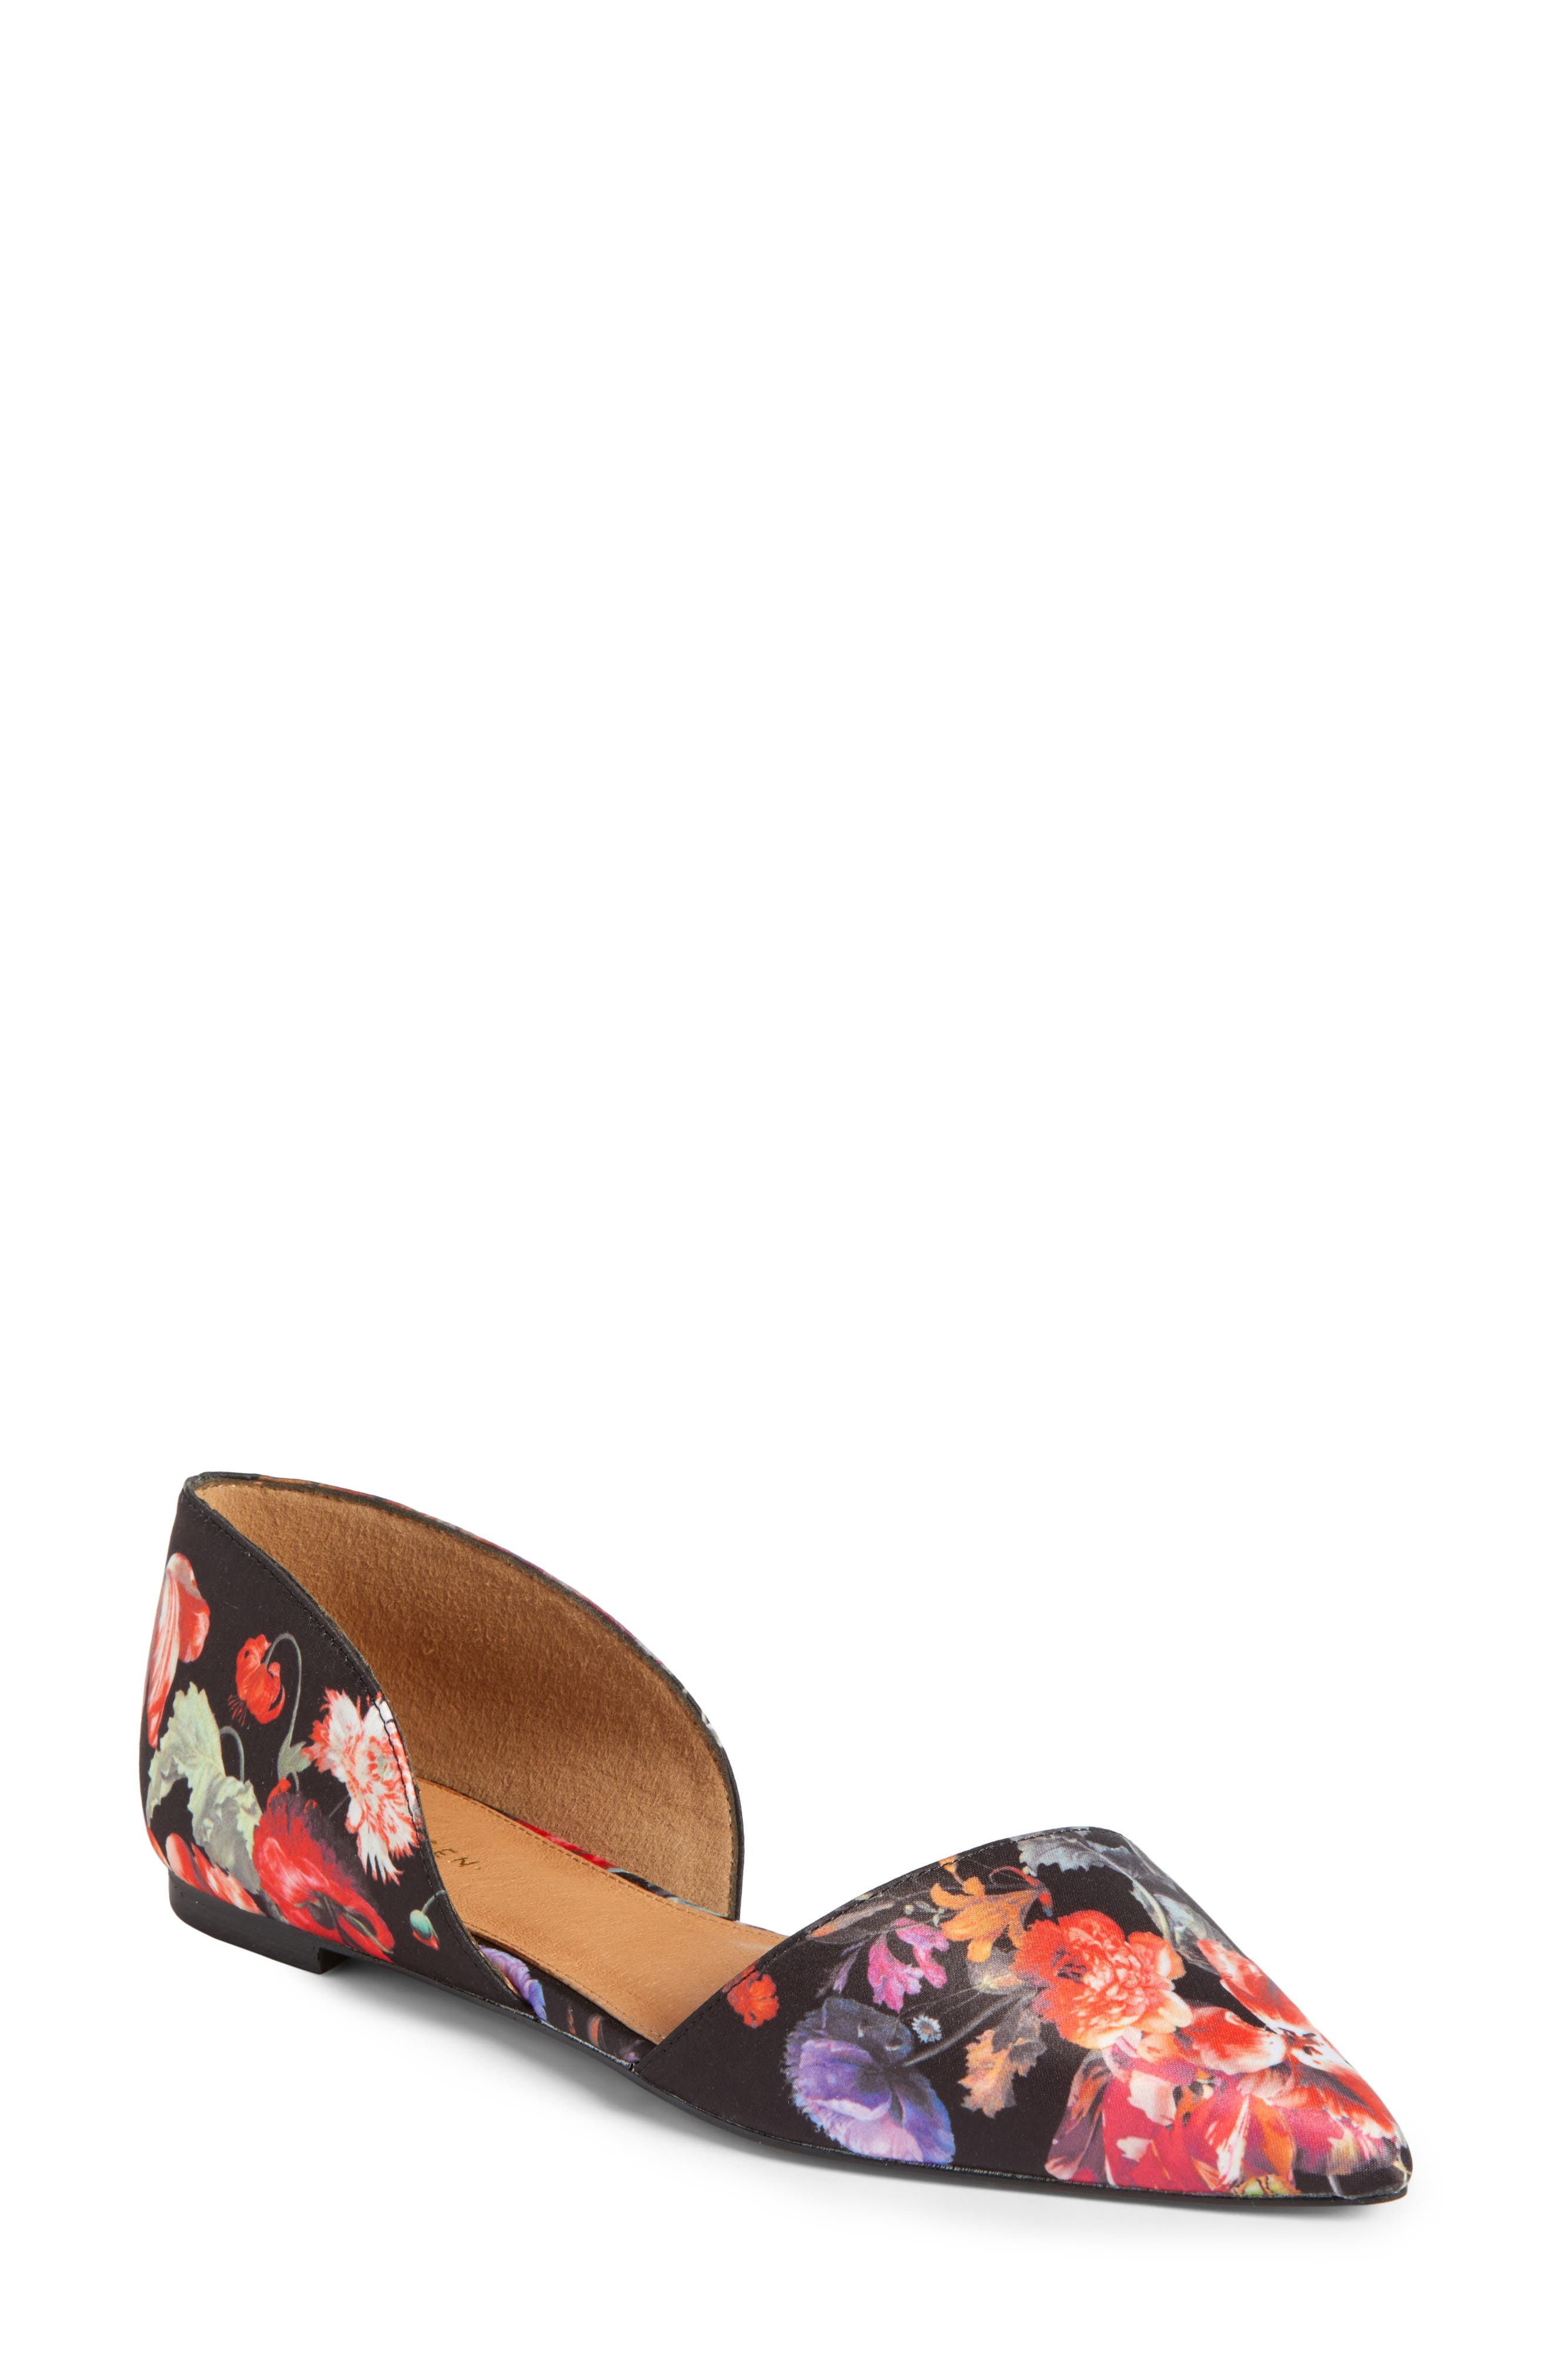 Maisy d'Orsay Flat,                             Main thumbnail 1, color,                             Black/ Red Floral Fabric